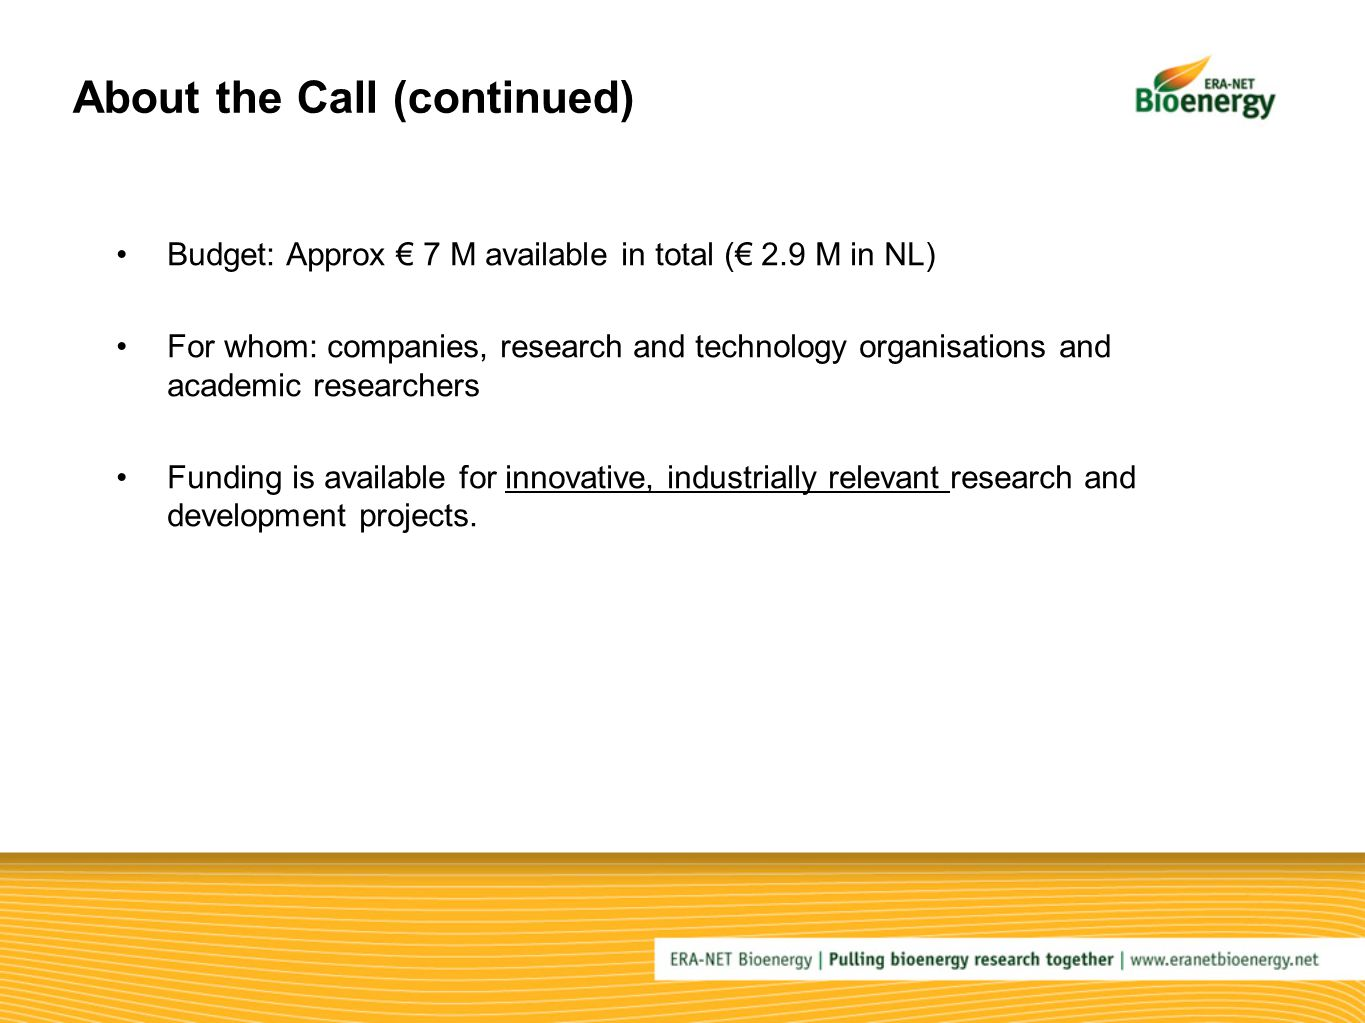 About the Call (continued) Budget: Approx € 7 M available in total (€ 2.9 M in NL) For whom: companies, research and technology organisations and academic researchers Funding is available for innovative, industrially relevant research and development projects.